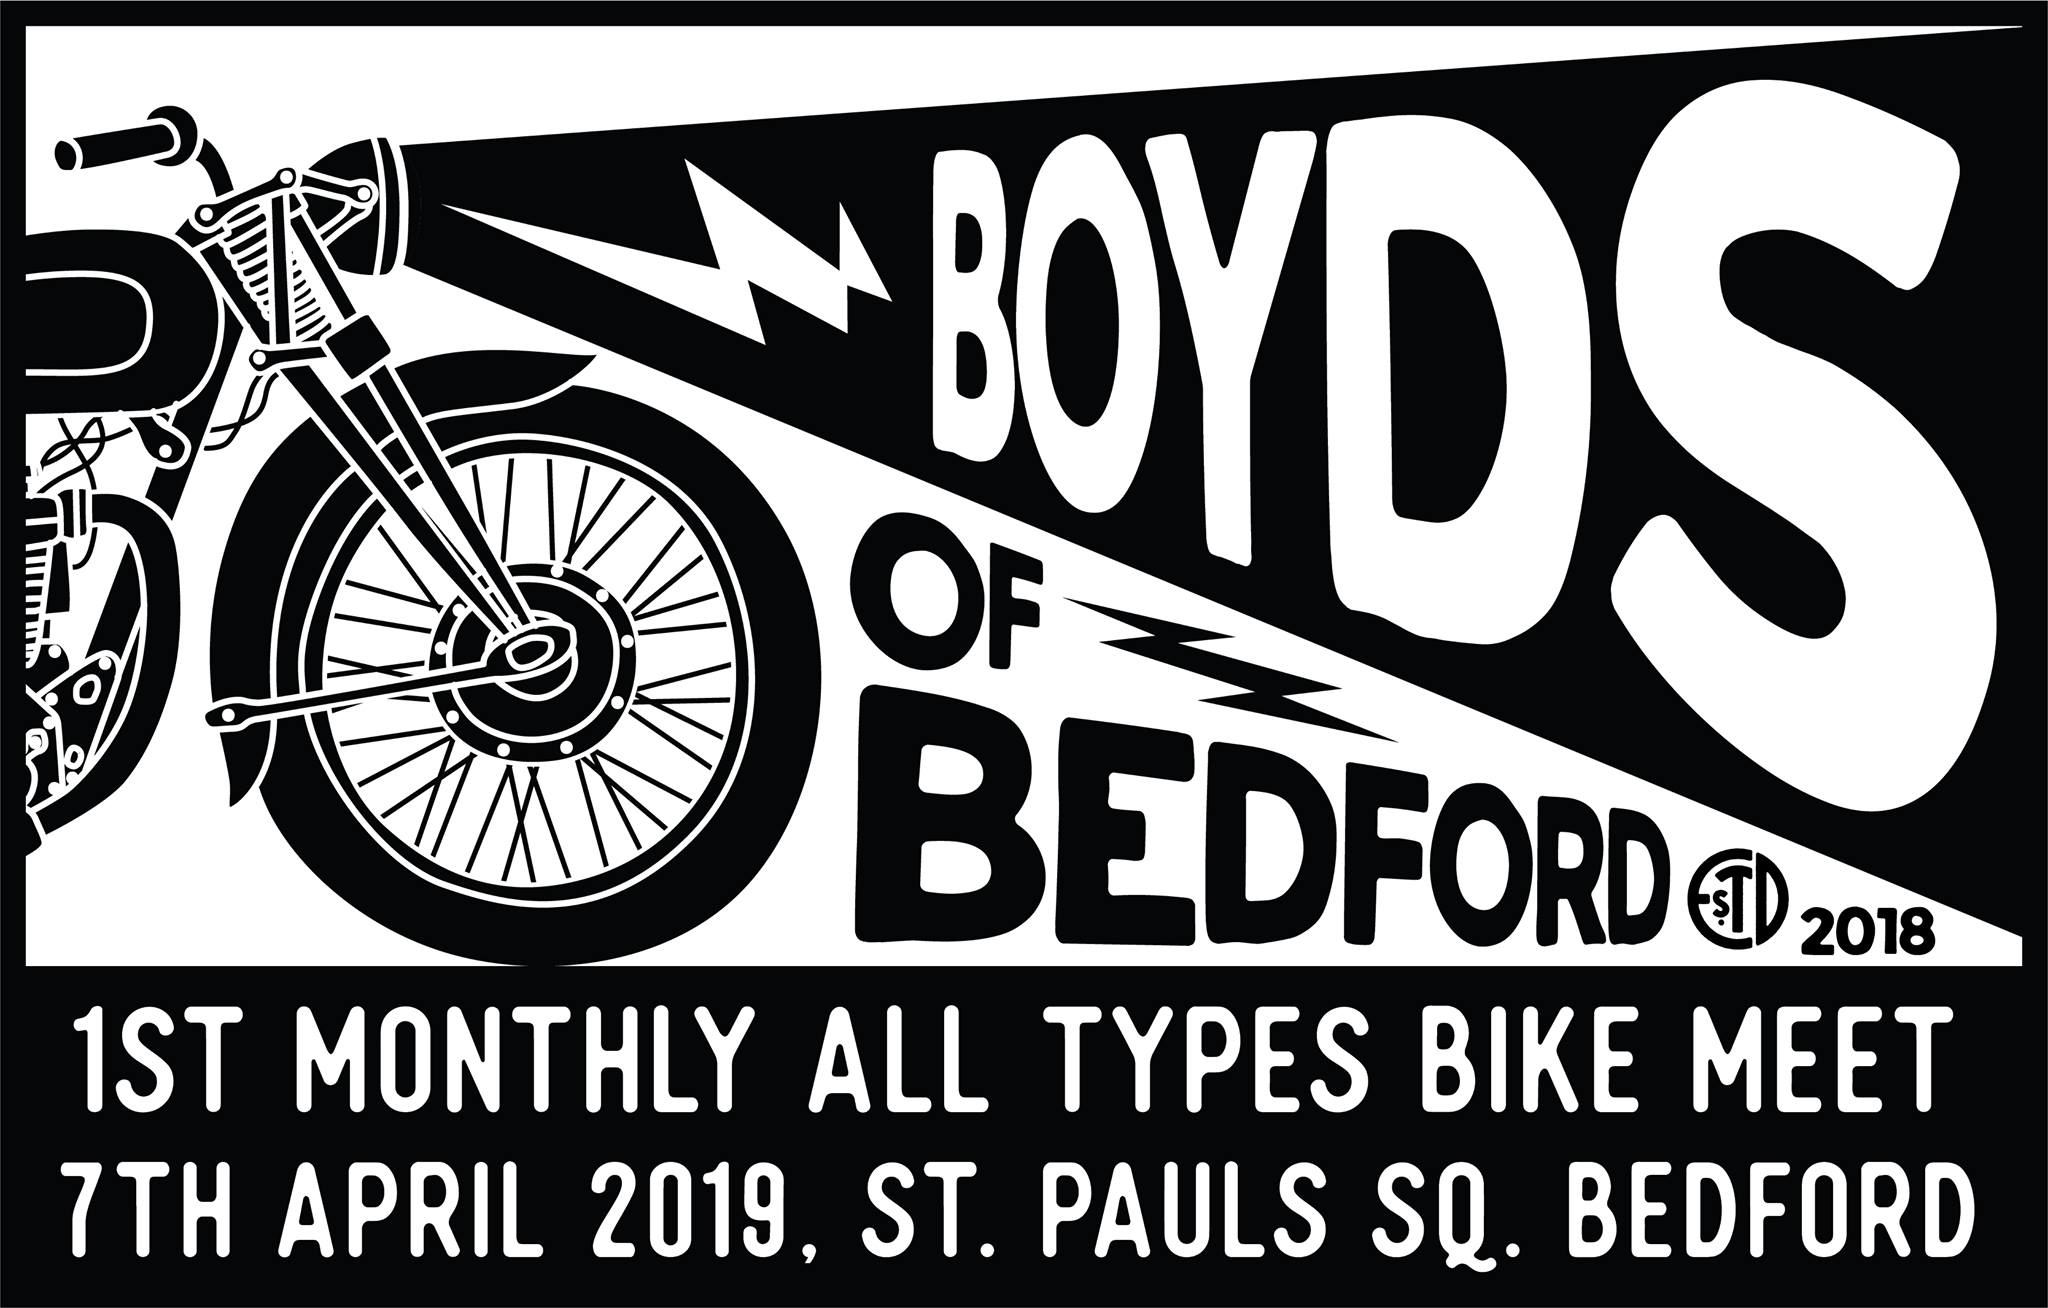 1st Monthly Boyds of Bedford All Types Bike Meet